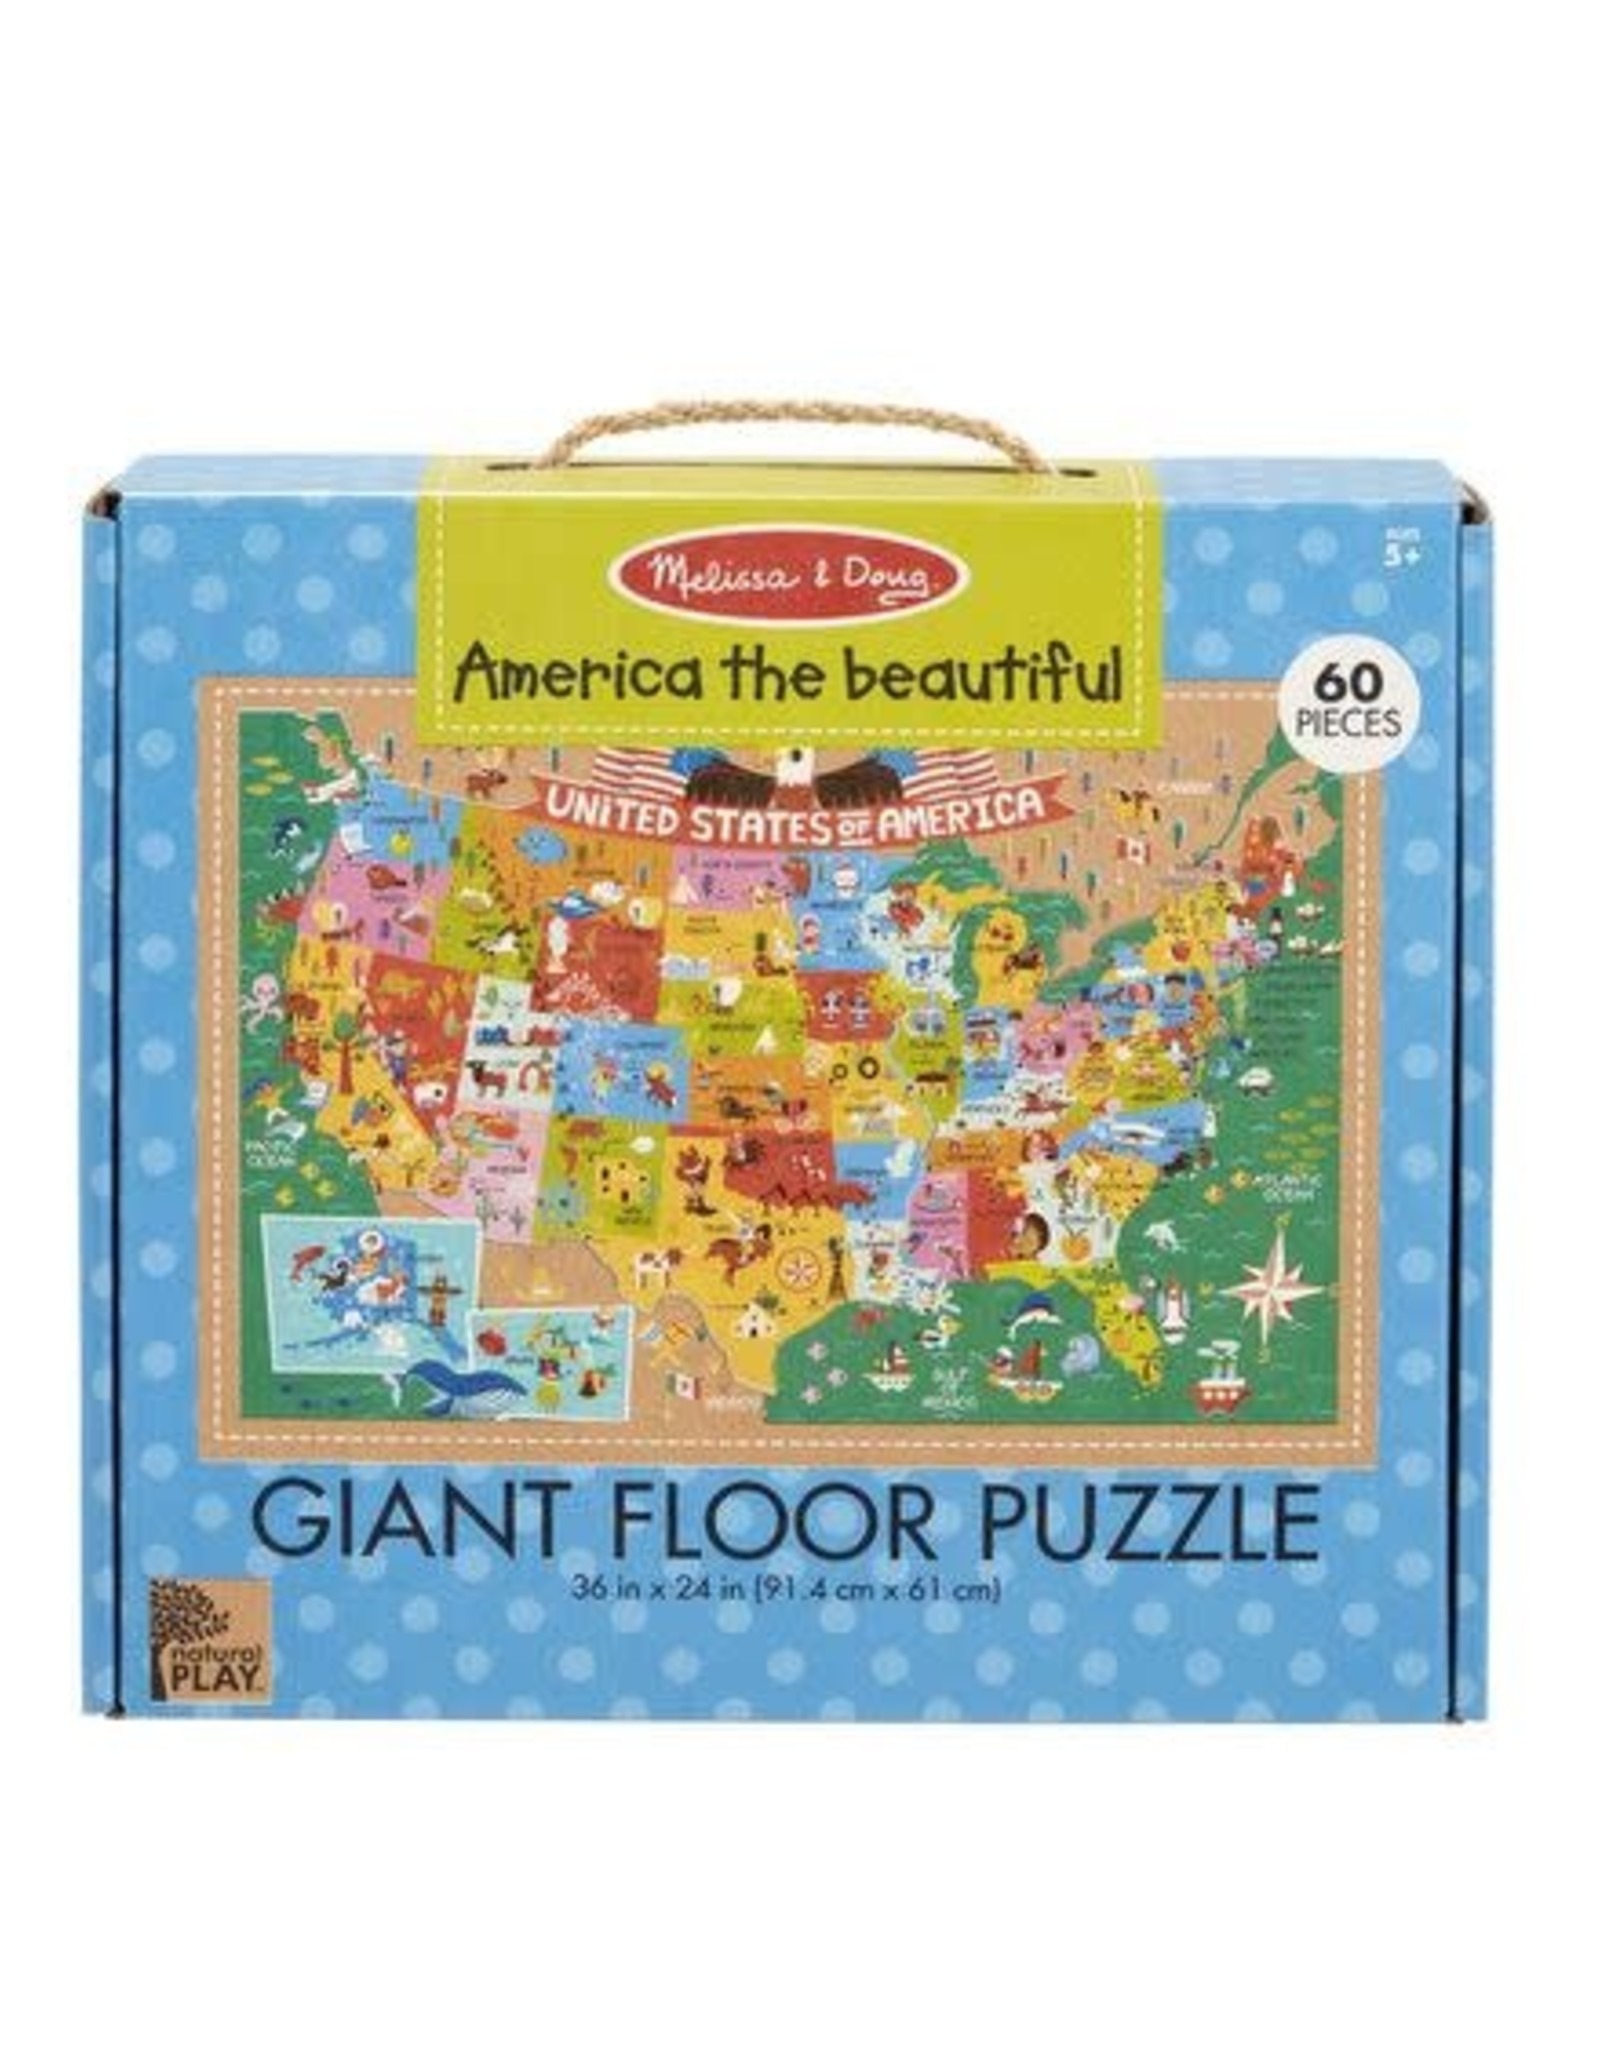 Melissa & Doug NP Giant Floor Puzzle - America the Beautiful